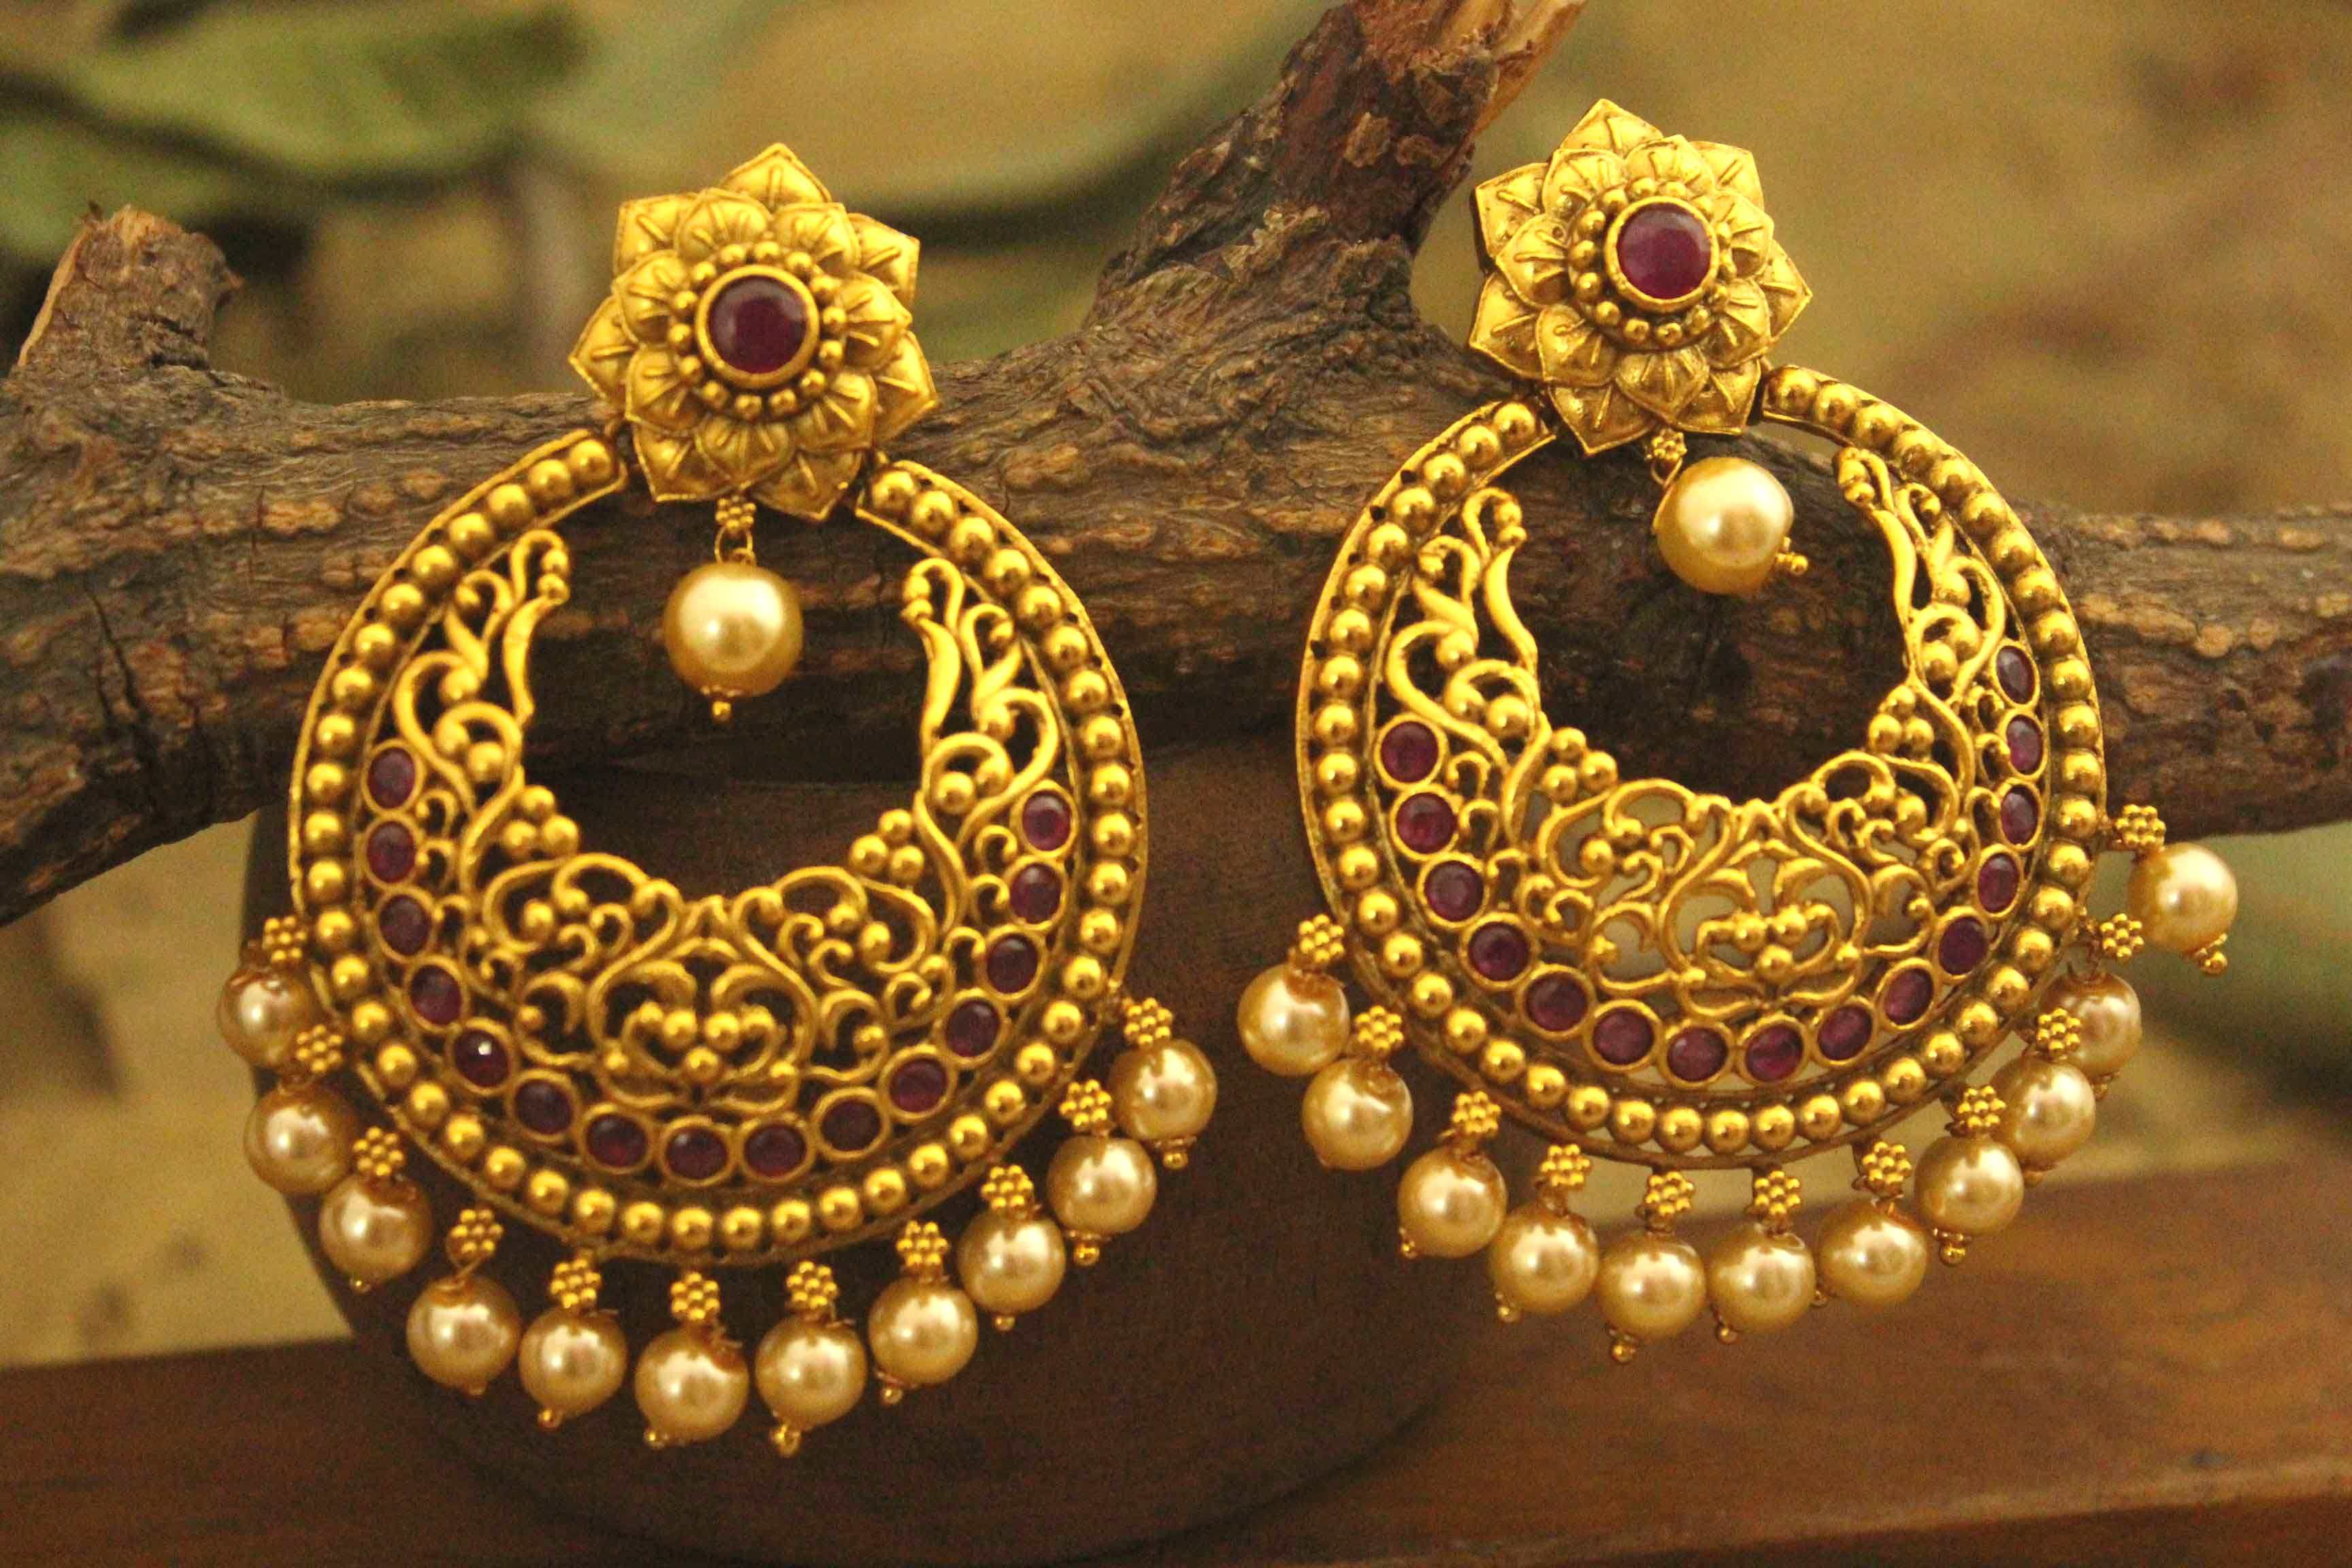 bbb08c57252 Antique Earrings shows pure Indian designer work with unique look.It  complements the designer attires for occasions . This is golden designer  earrings.